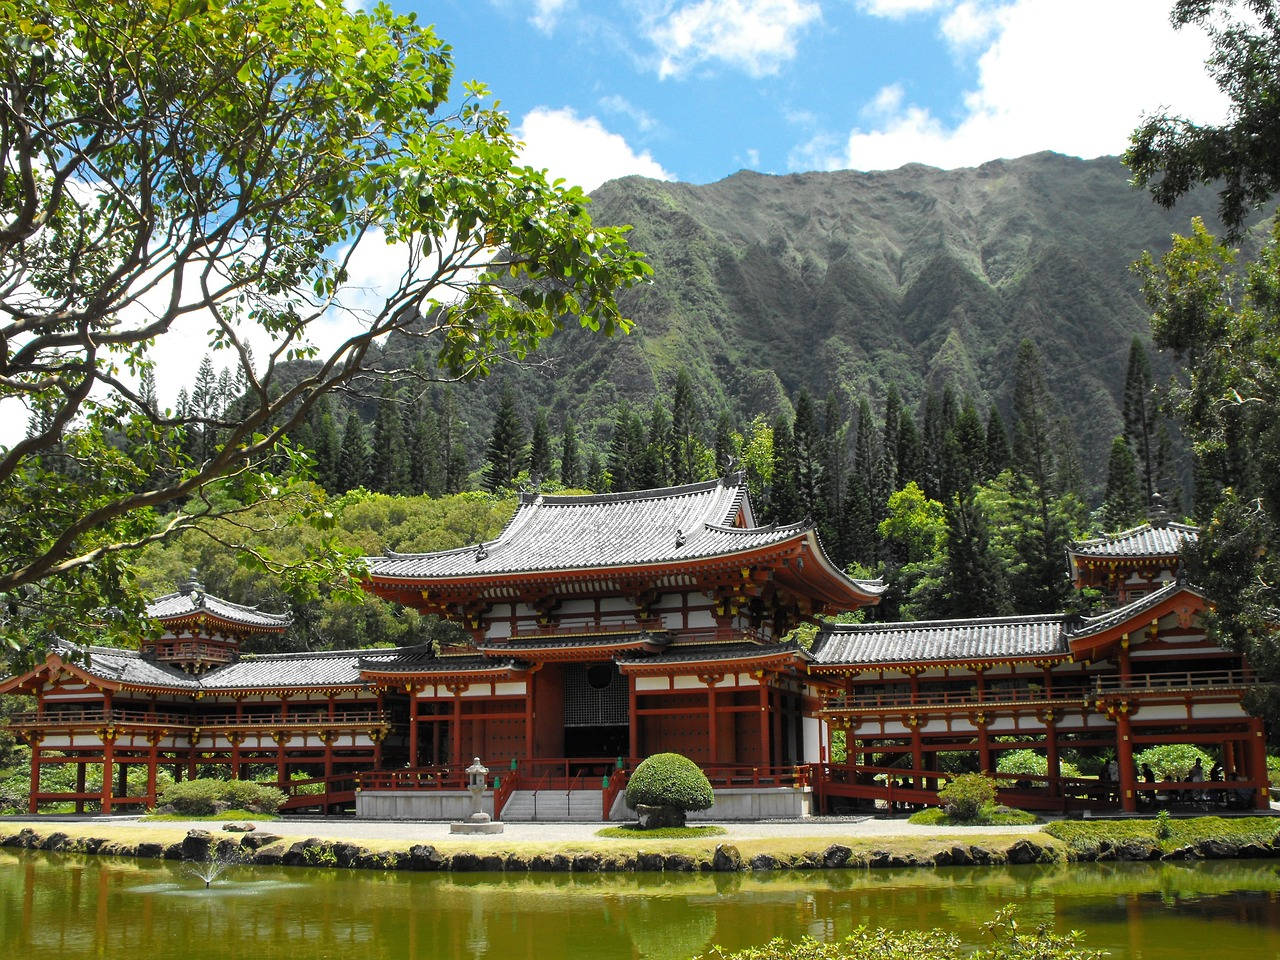 byodo-in-temple-3299623_1280